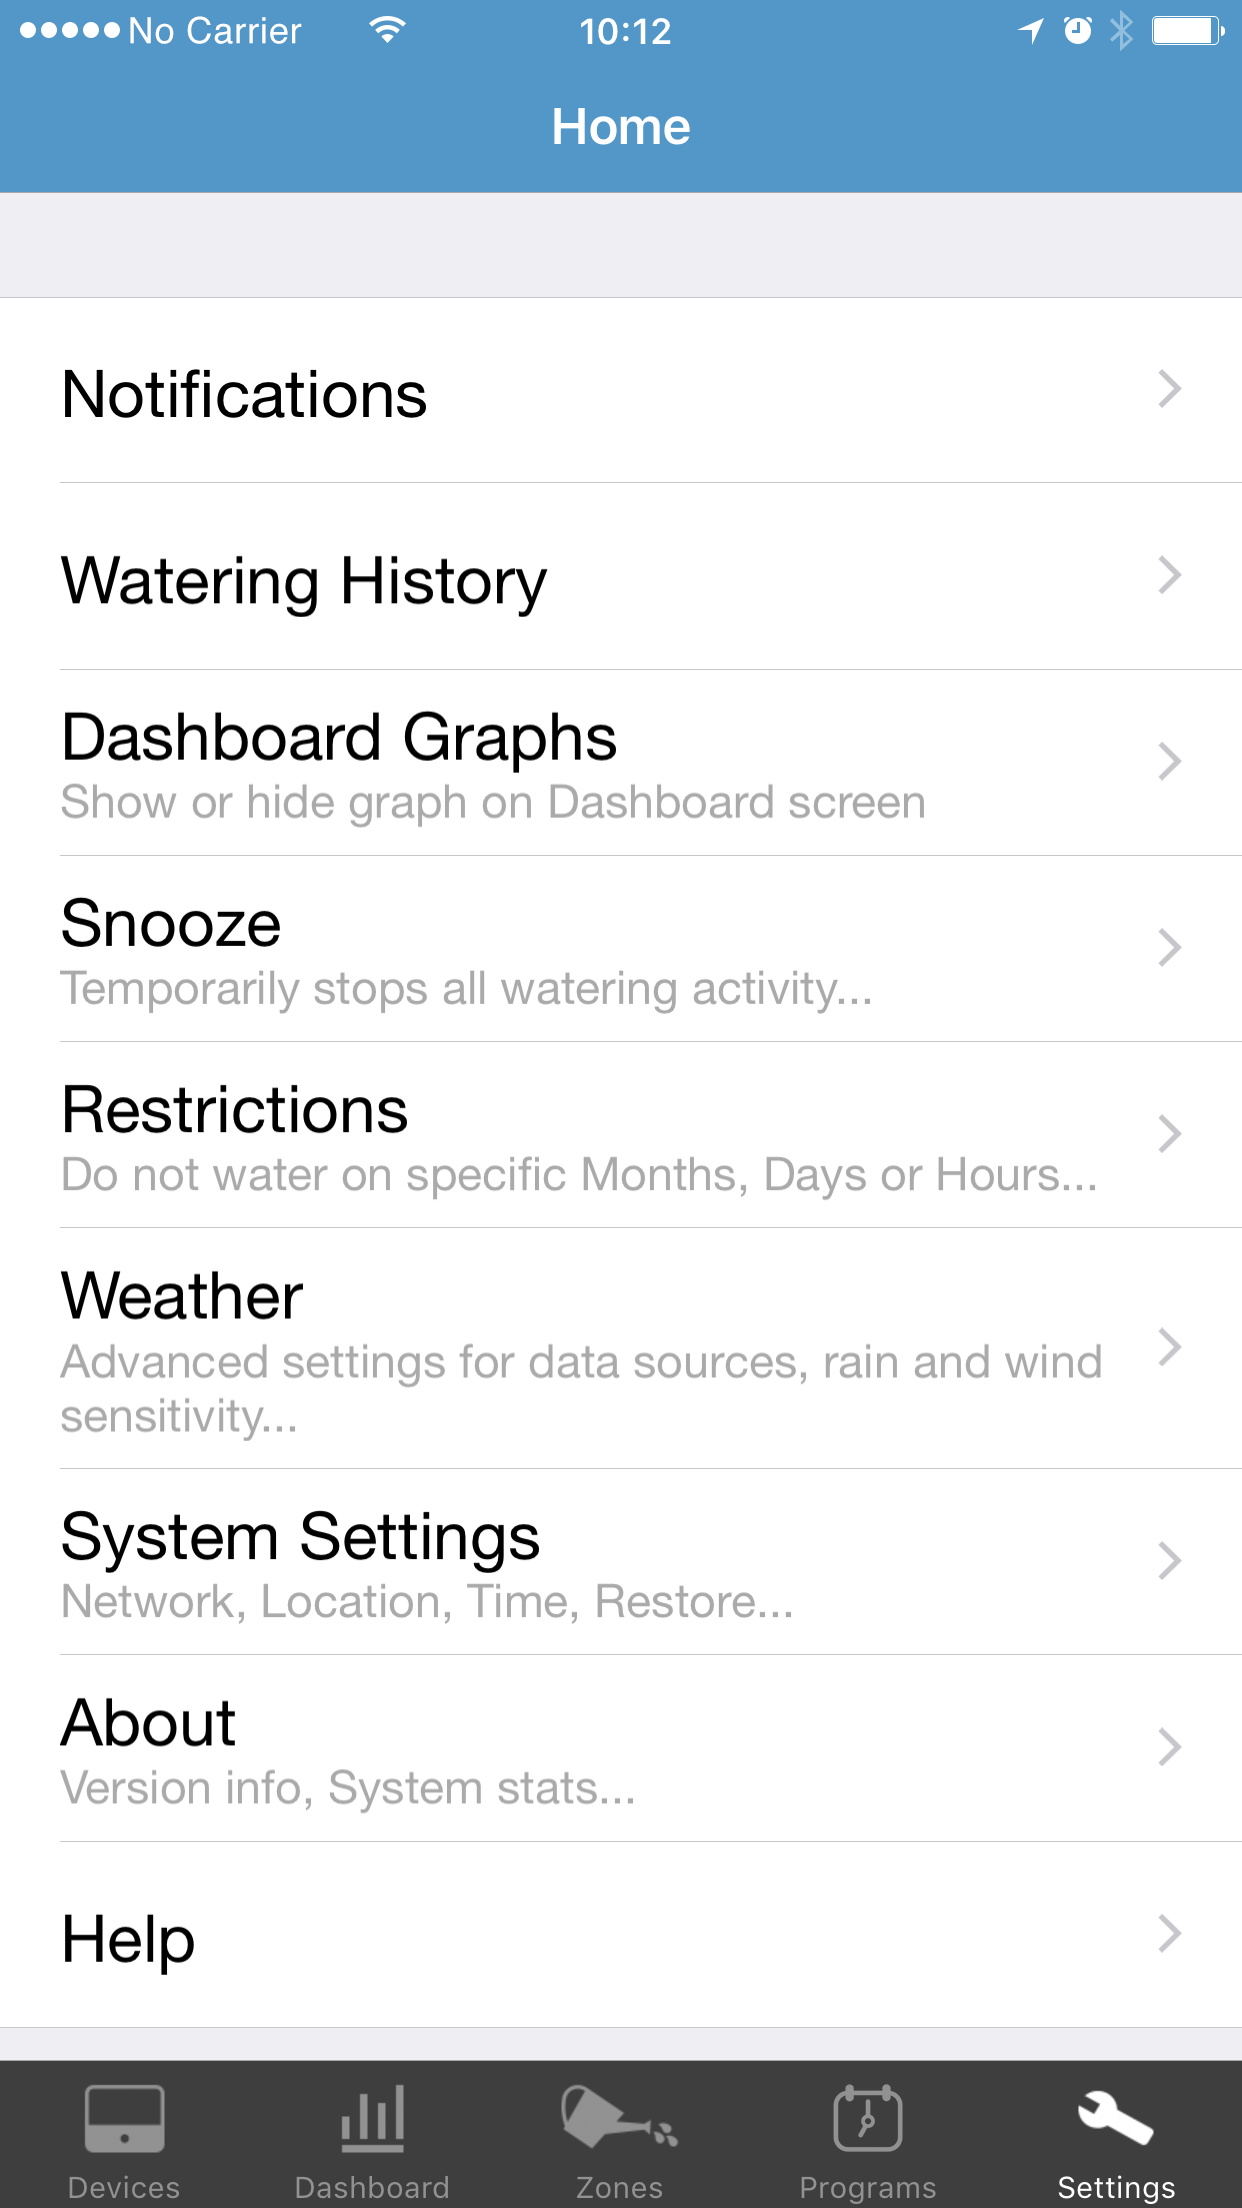 Settings edit screen of the RainMachine mobile application